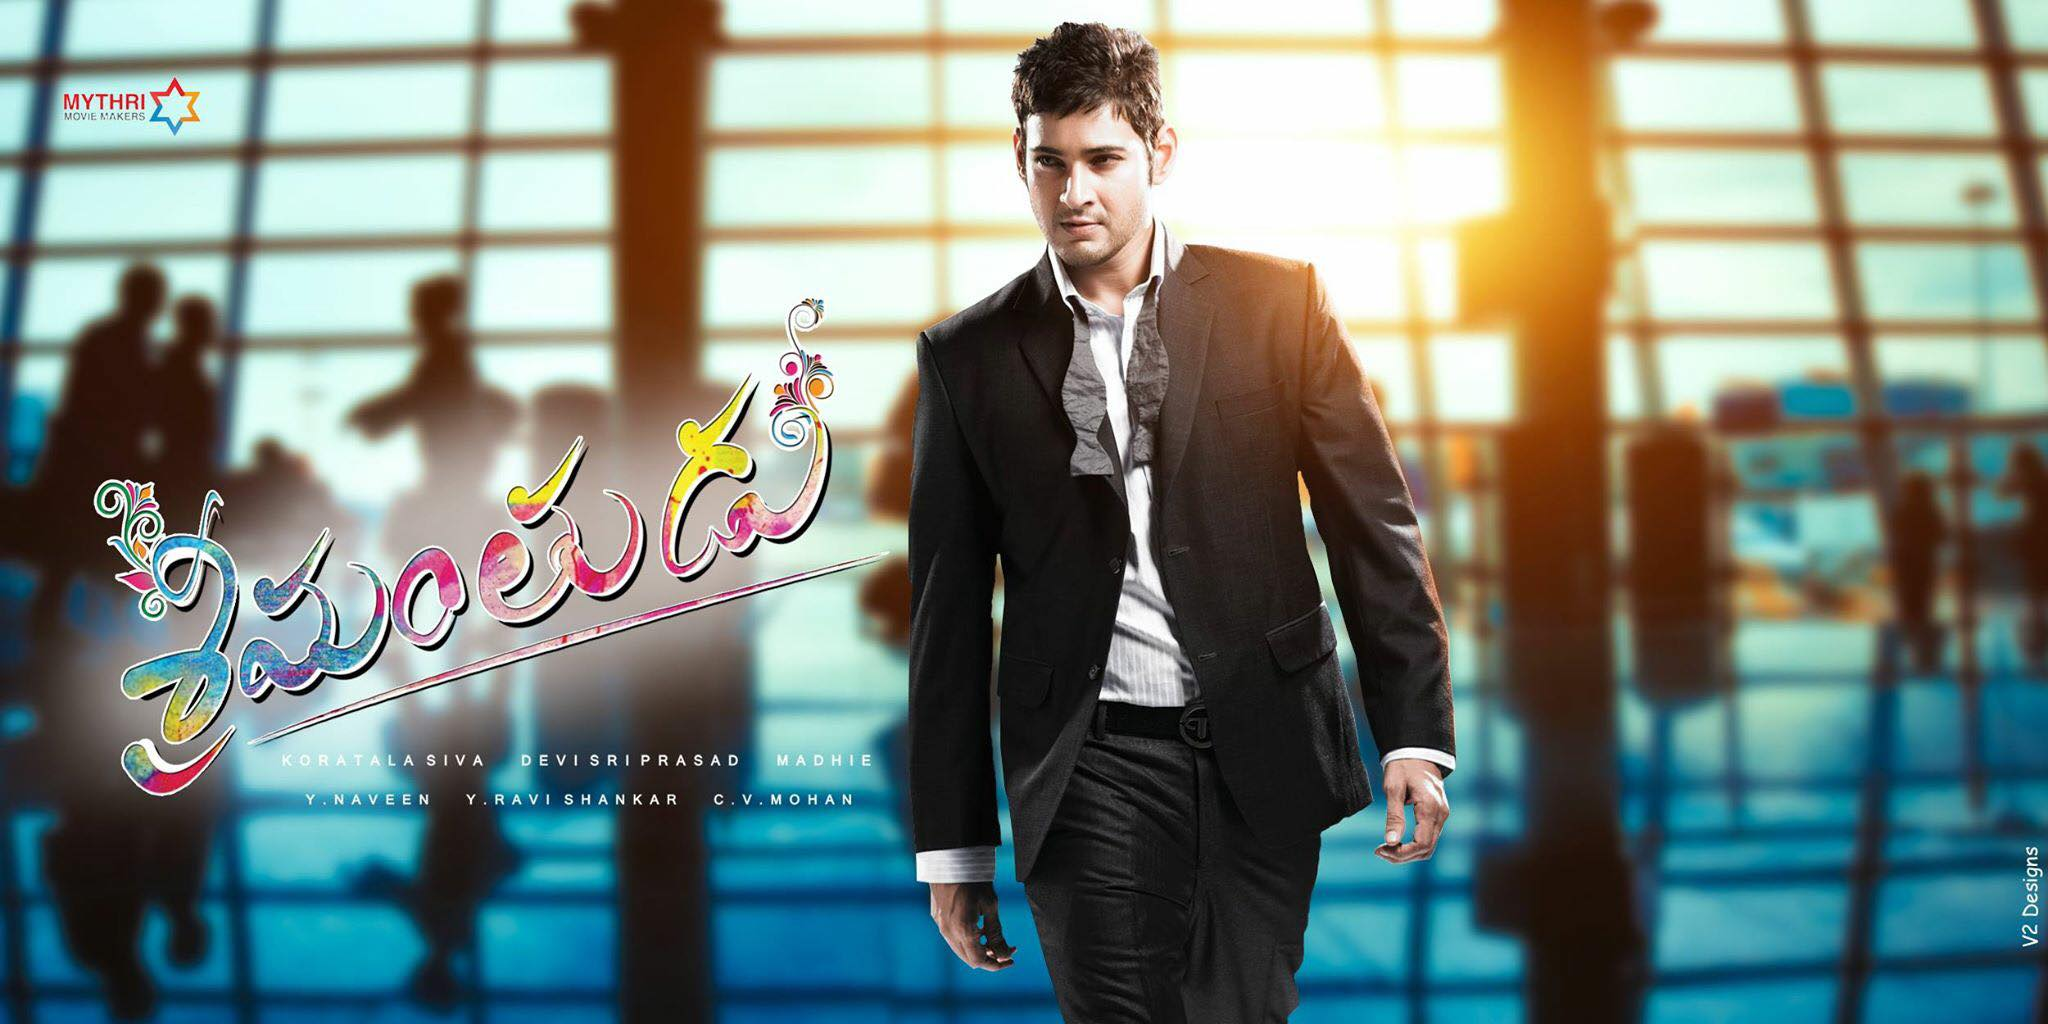 Mahesh-Babu-Srimanthudu-Movie-First-Look